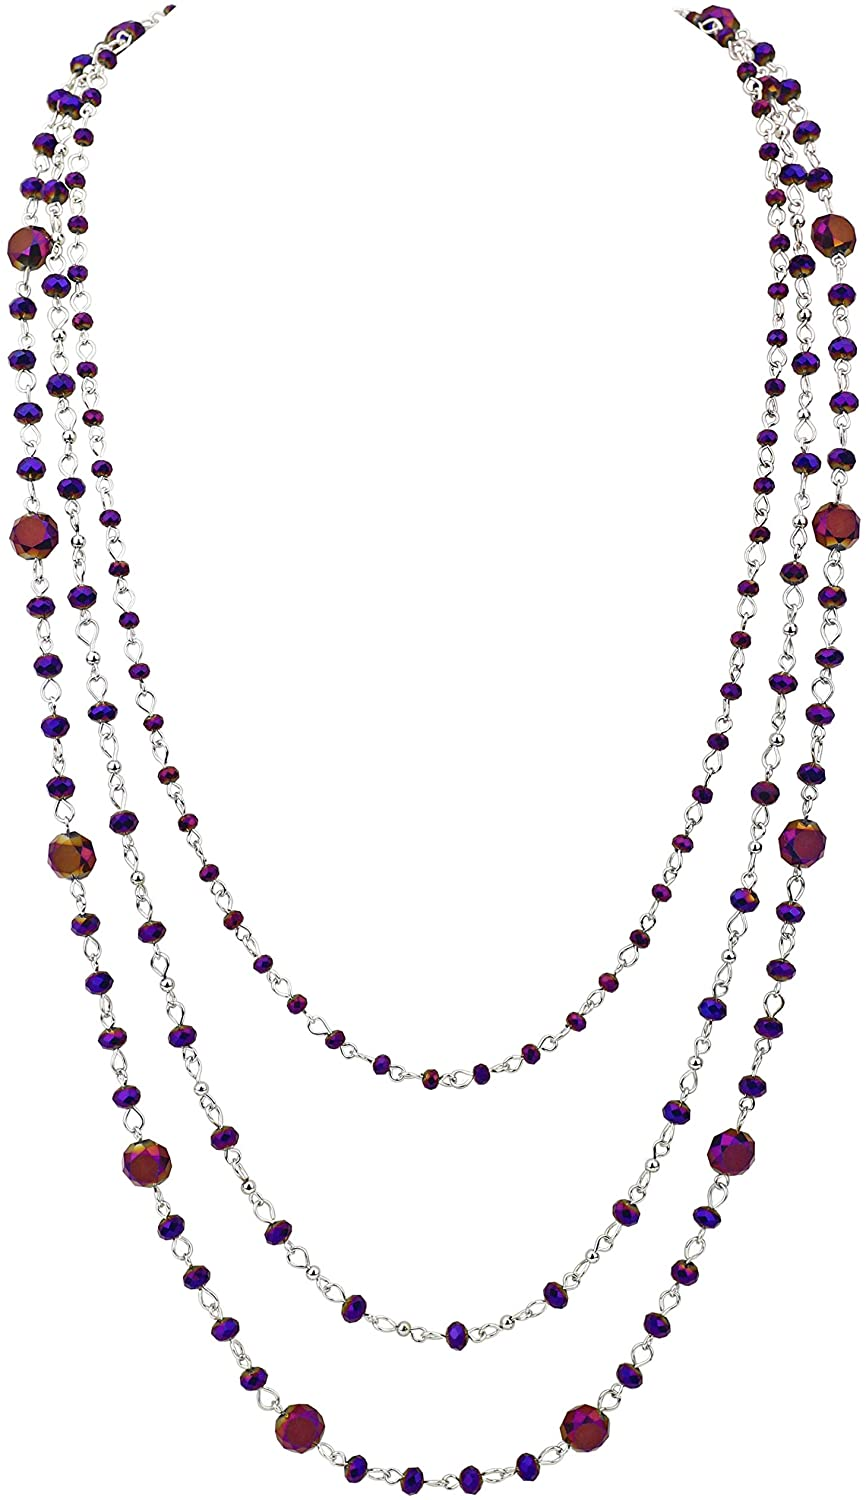 FIRSTMEET Long Chain Multi Layer Fashion Glass Beads Handmade Necklace